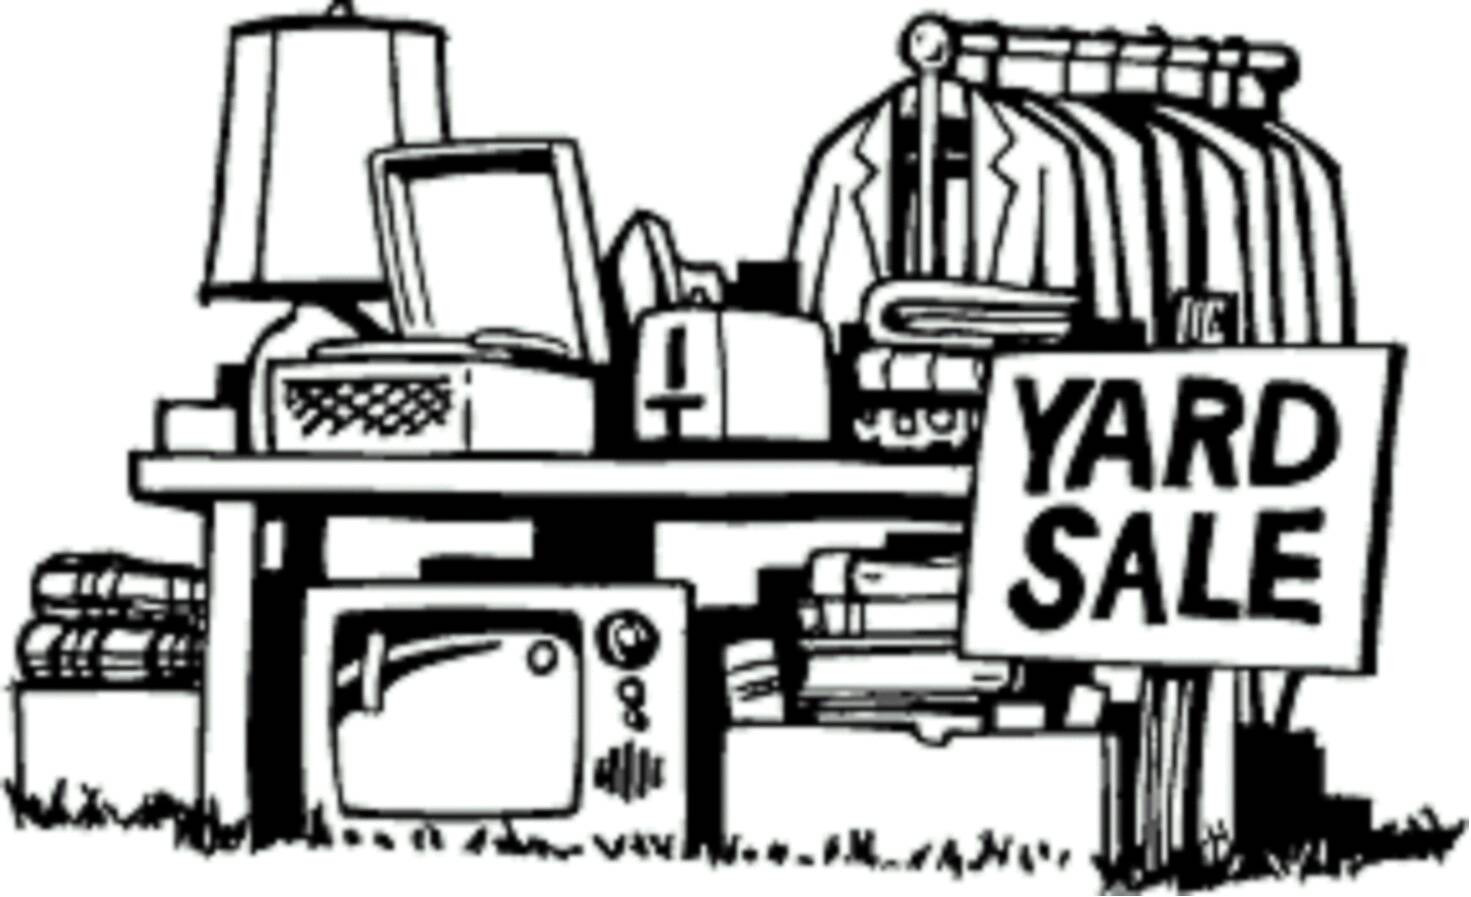 Garage sale yard sale flyers clipart 2.